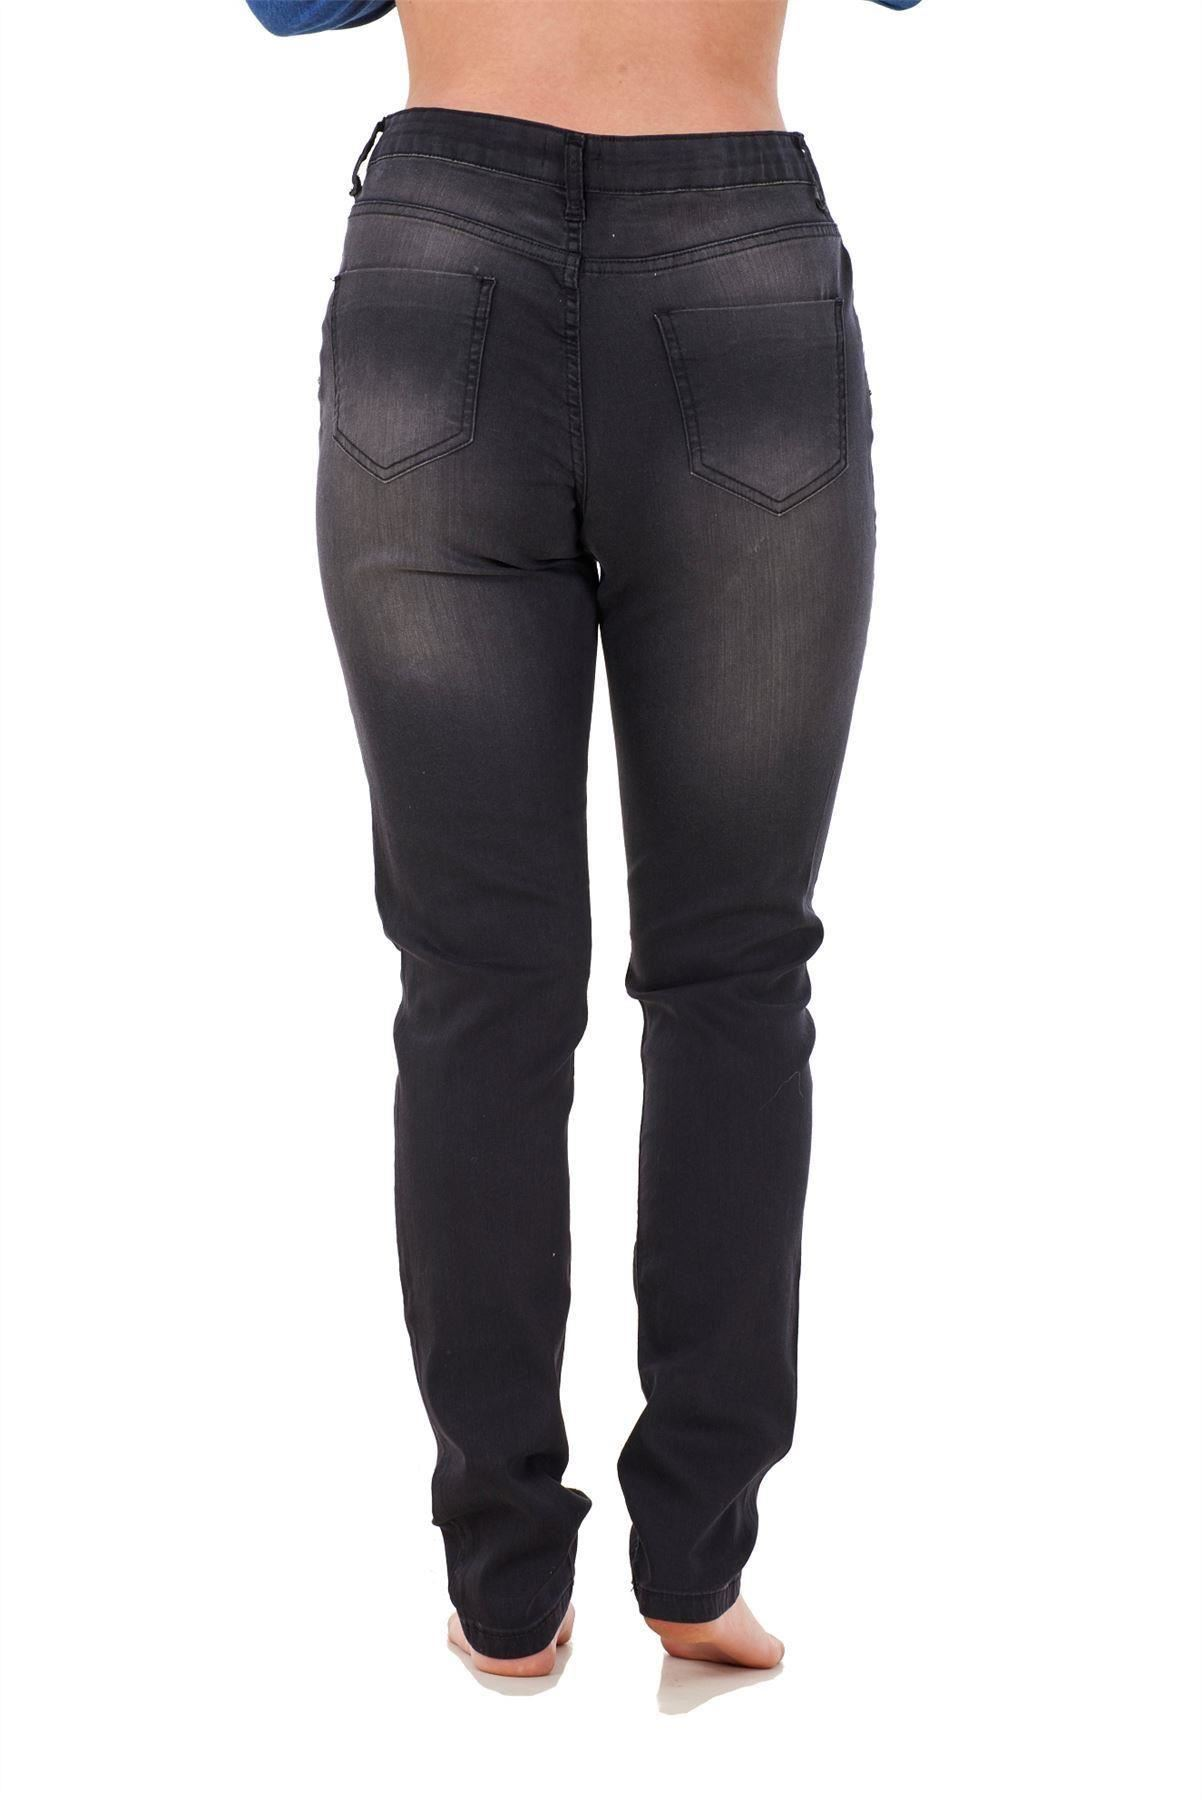 Ladies-Stretch-Jeans-Denim-cotton-Zip-fly-High-Waisted-Slim-Fit-Trousers-Pants thumbnail 11